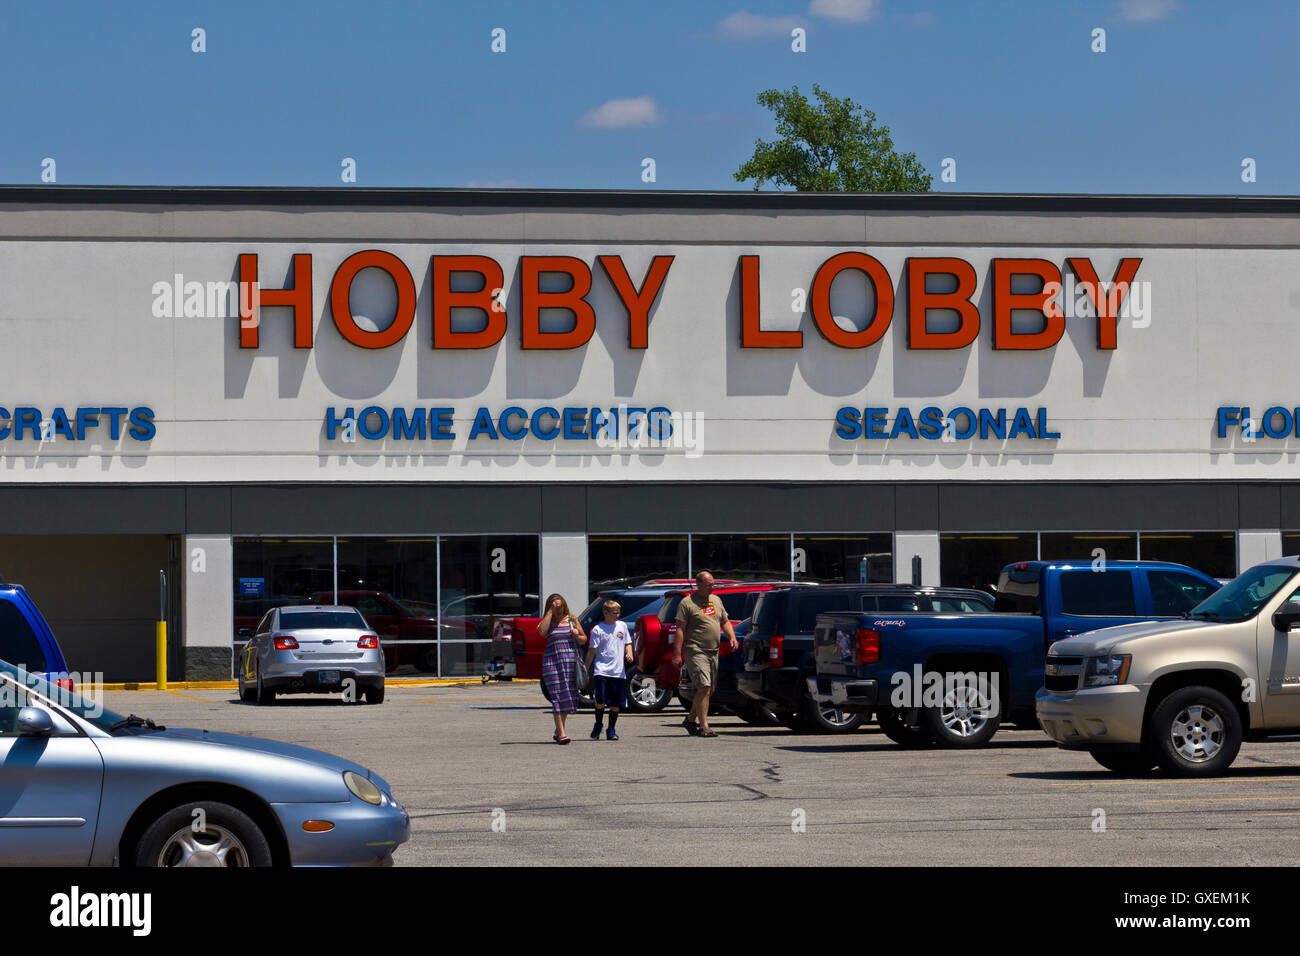 Indianapolis - Circa June 2016: Hobby Lobby Retail Location. Hobby Lobby is a Privately Owned Christian Principled - Stock Image